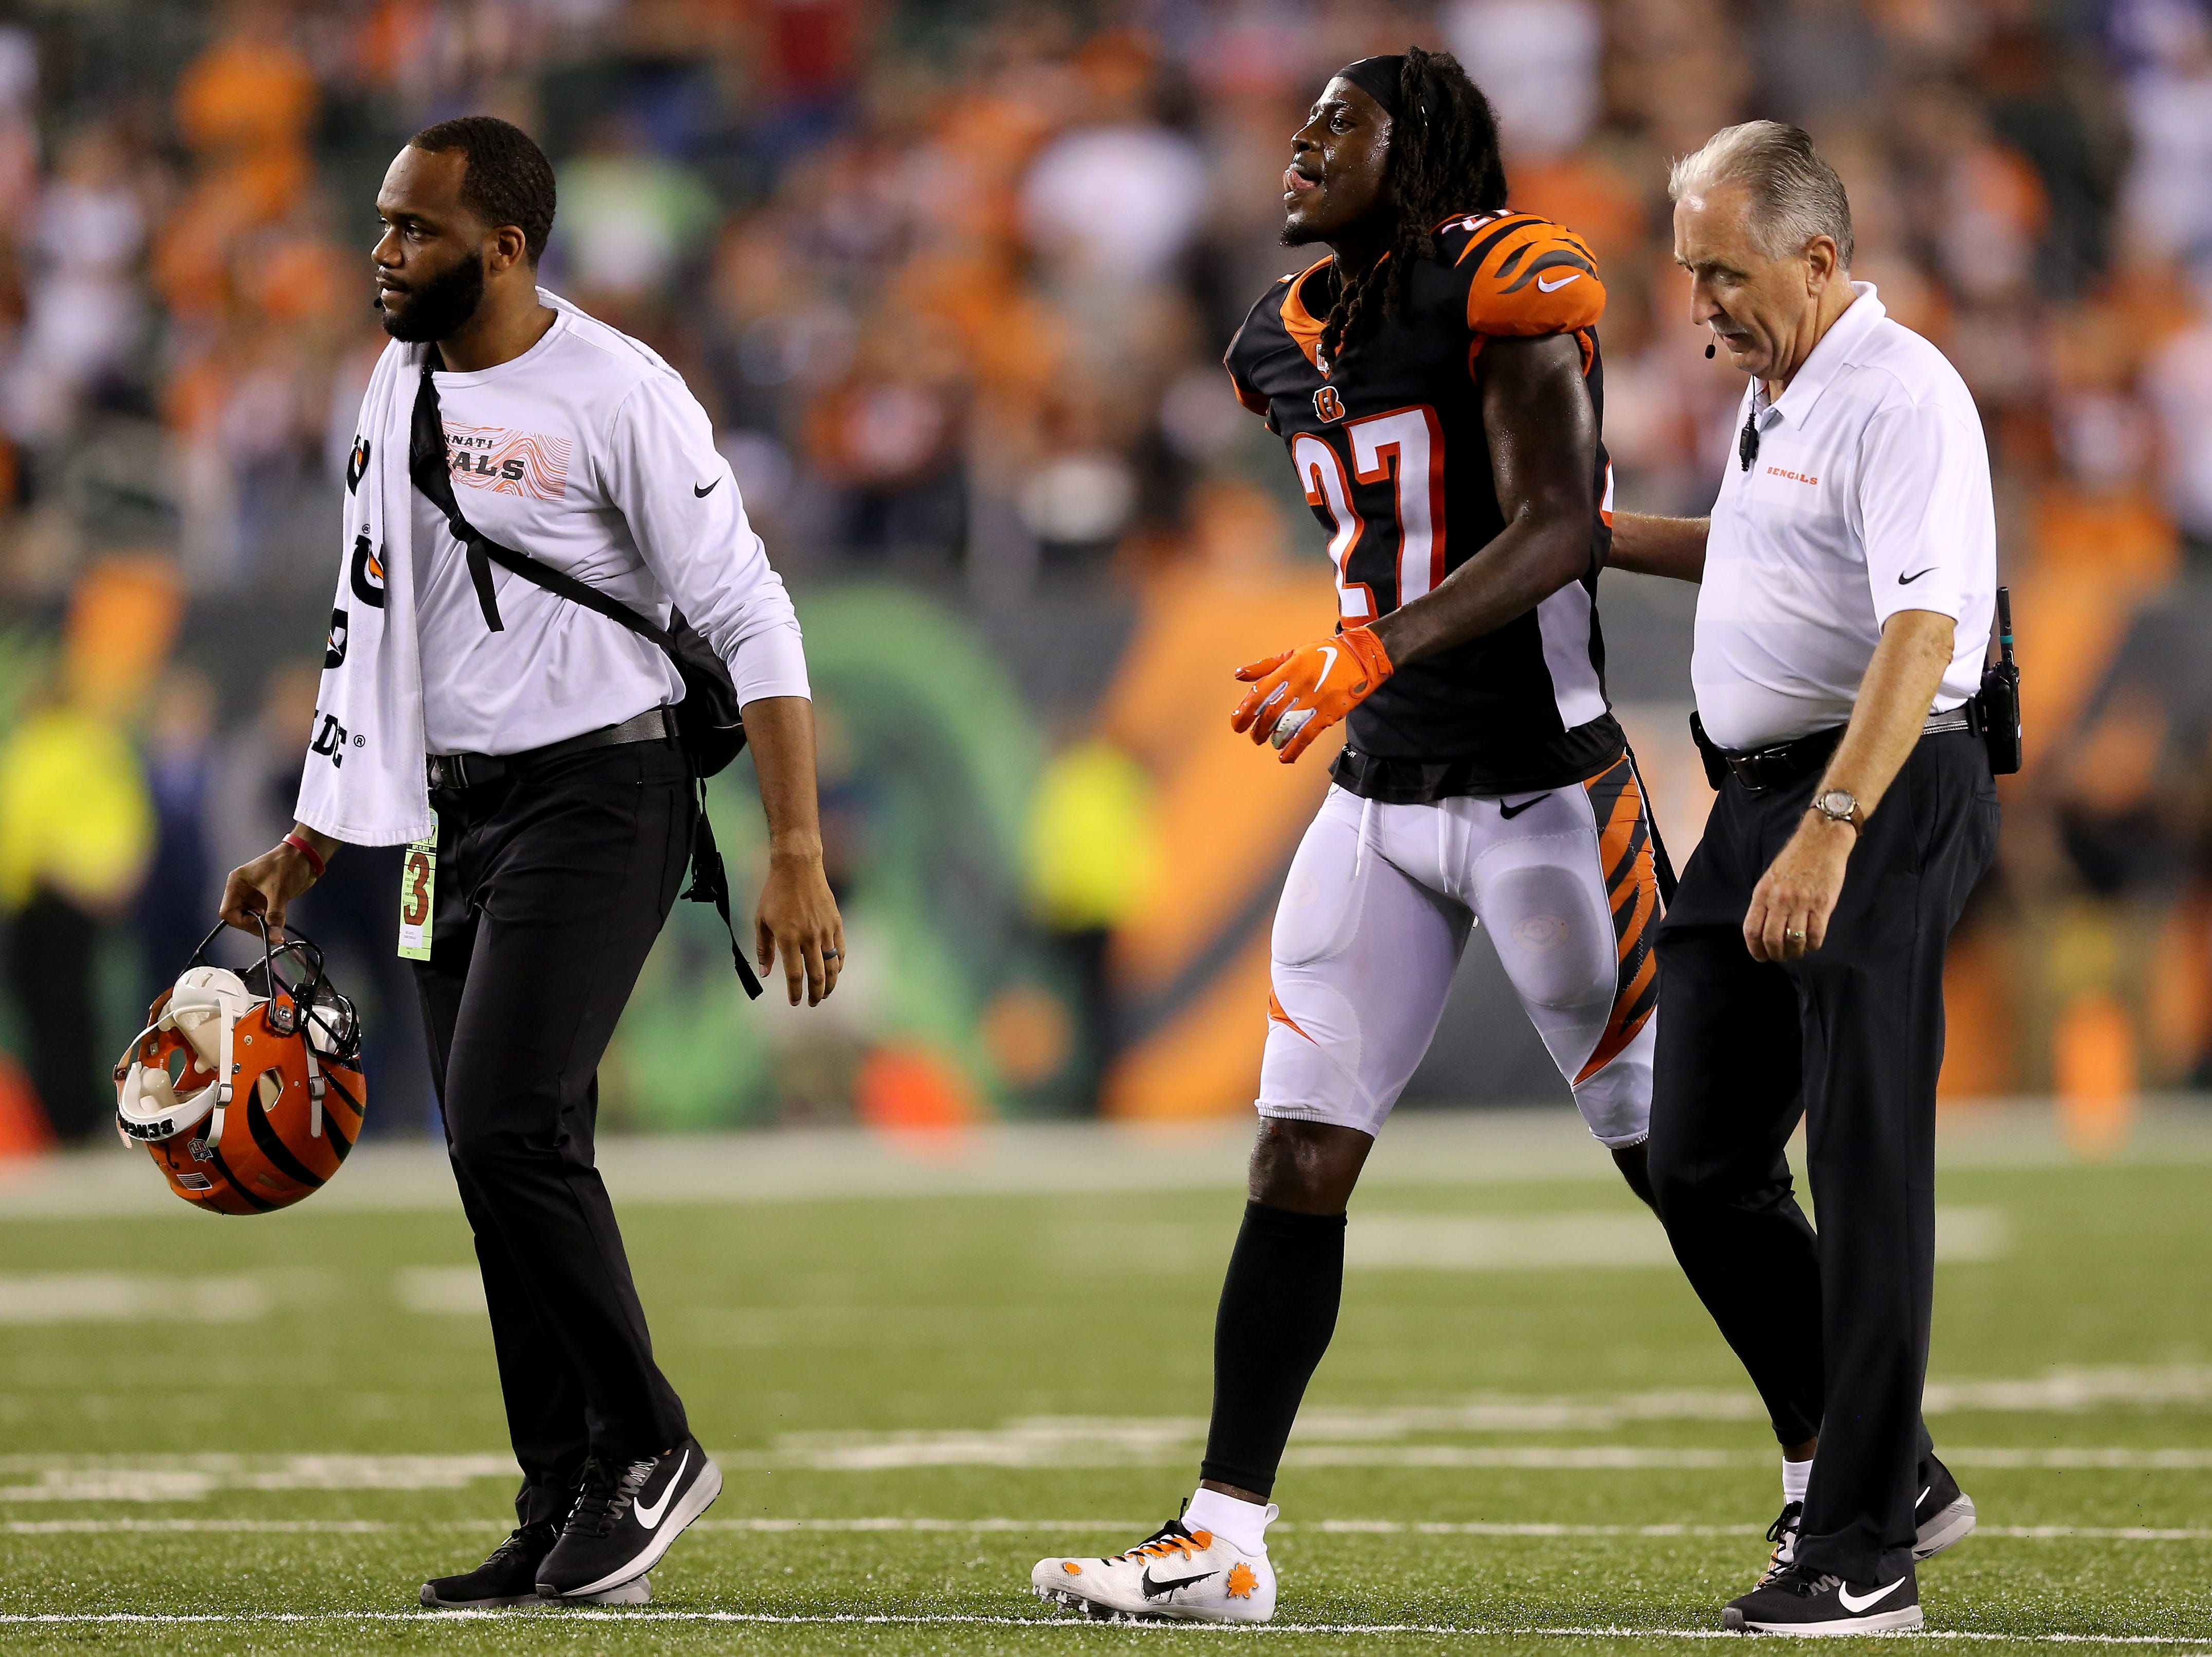 Cincinnati Bengals defensive back Dre Kirkpatrick (27) walks off the field after suffering an injury in the fourth quarter during the Week 2 NFL football game between the Baltimore Ravens and the Cincinnati Bengals, Friday, Sept. 14, 2018, Paul Brown Stadium in Cincinnati. Cincinnati won 34-23.